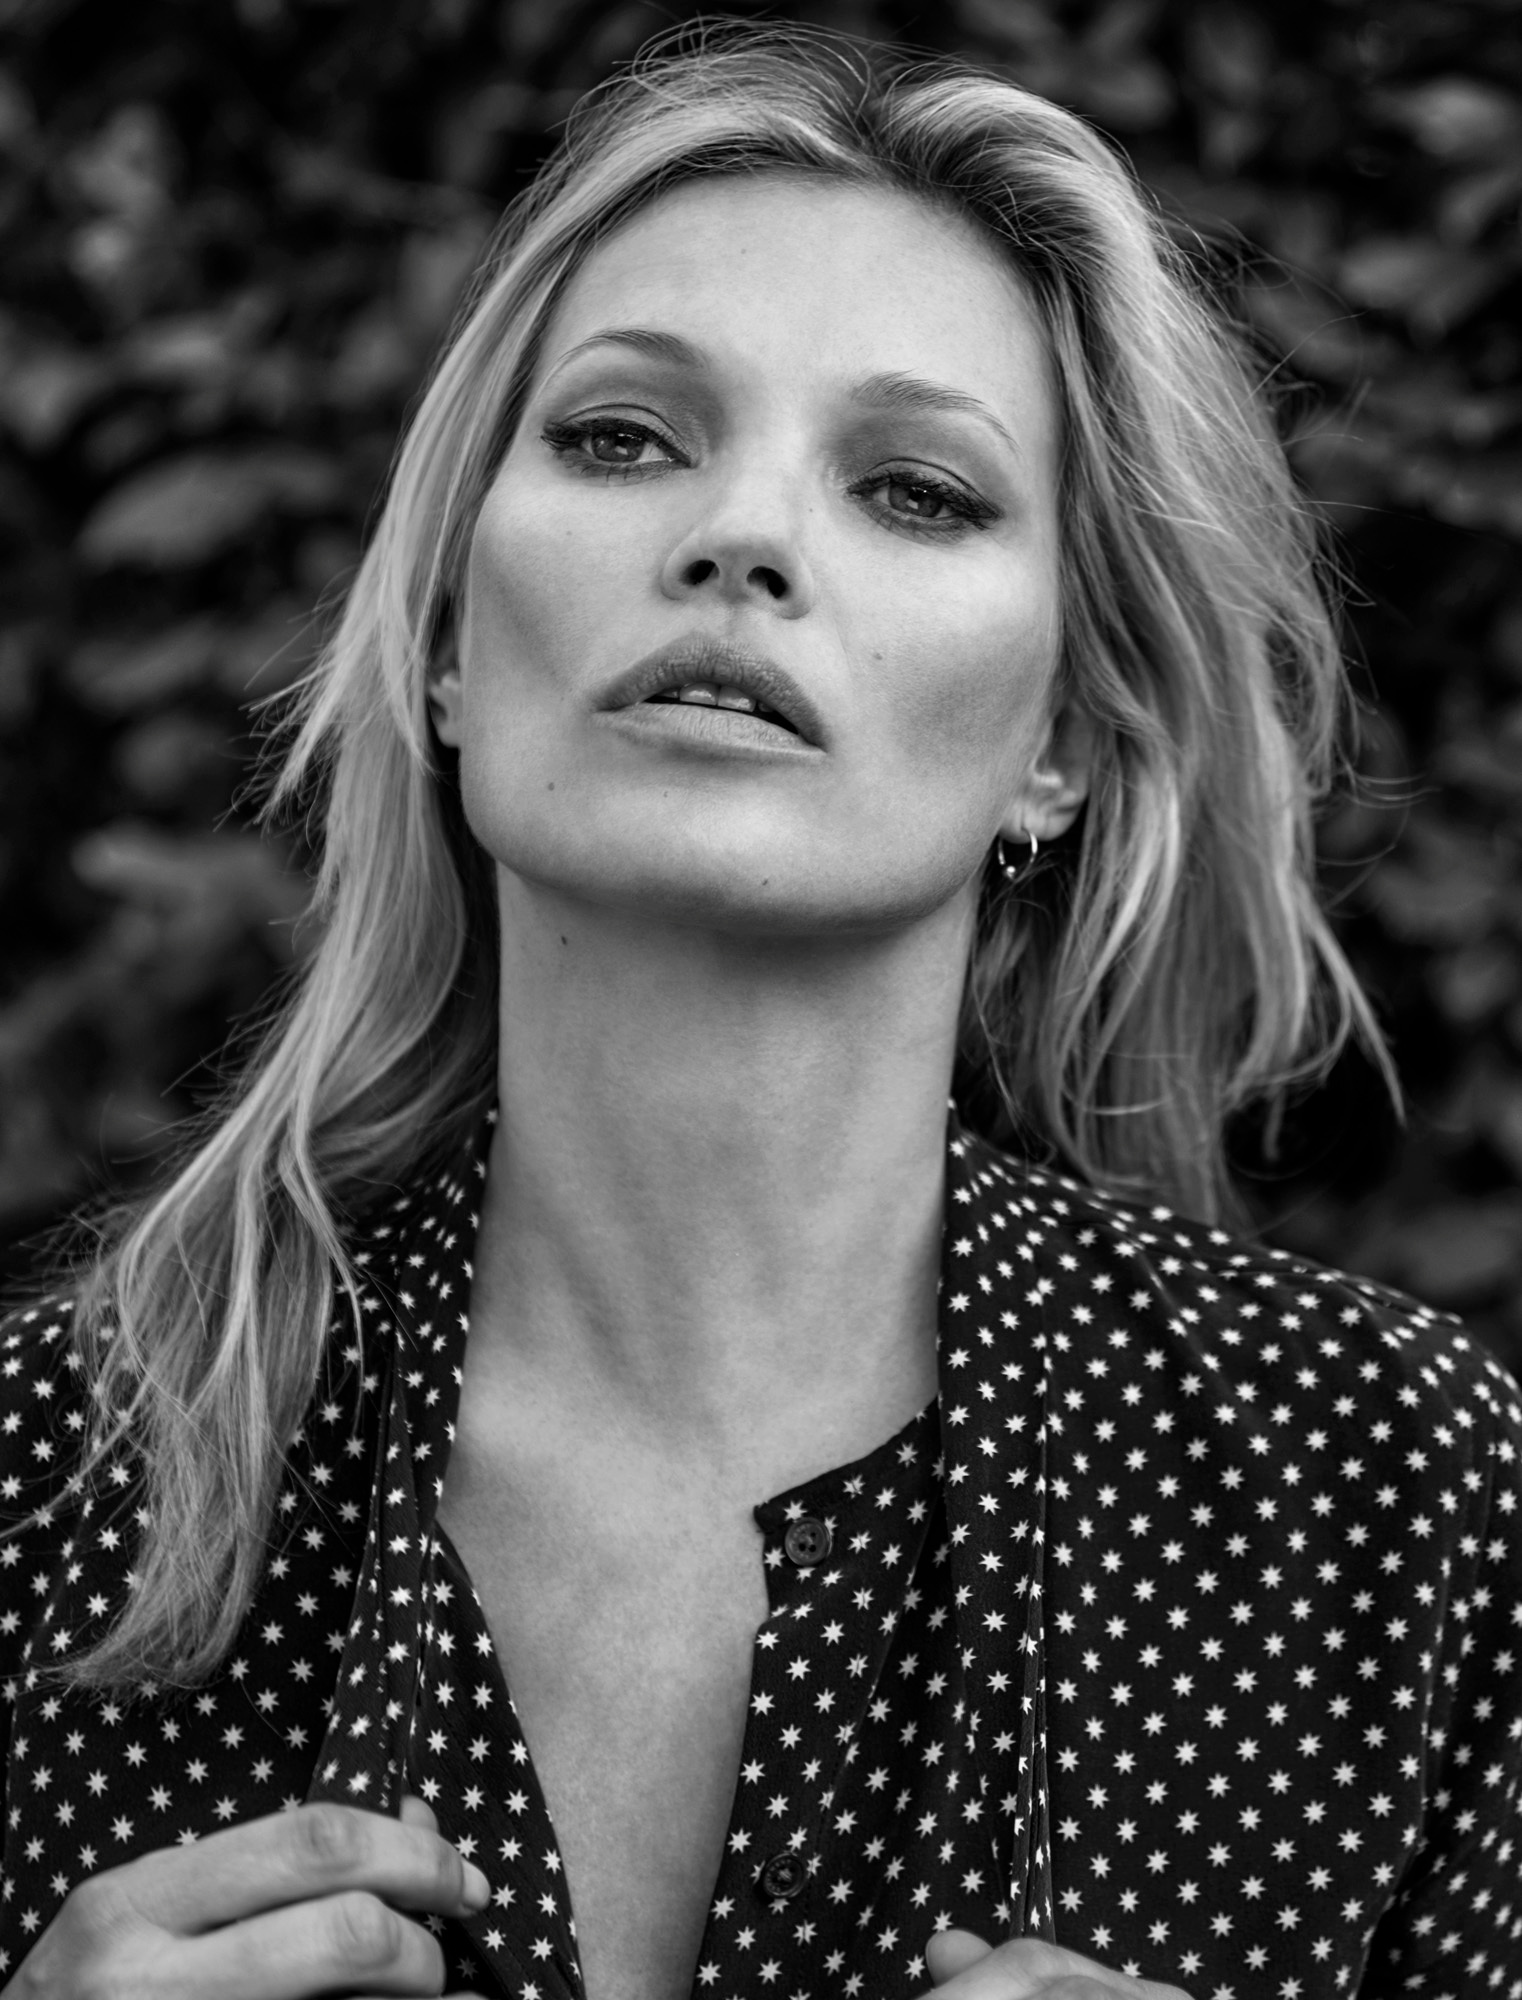 kate-moss-by-chris-colls-for-the-edit-june-2016-8.jpg